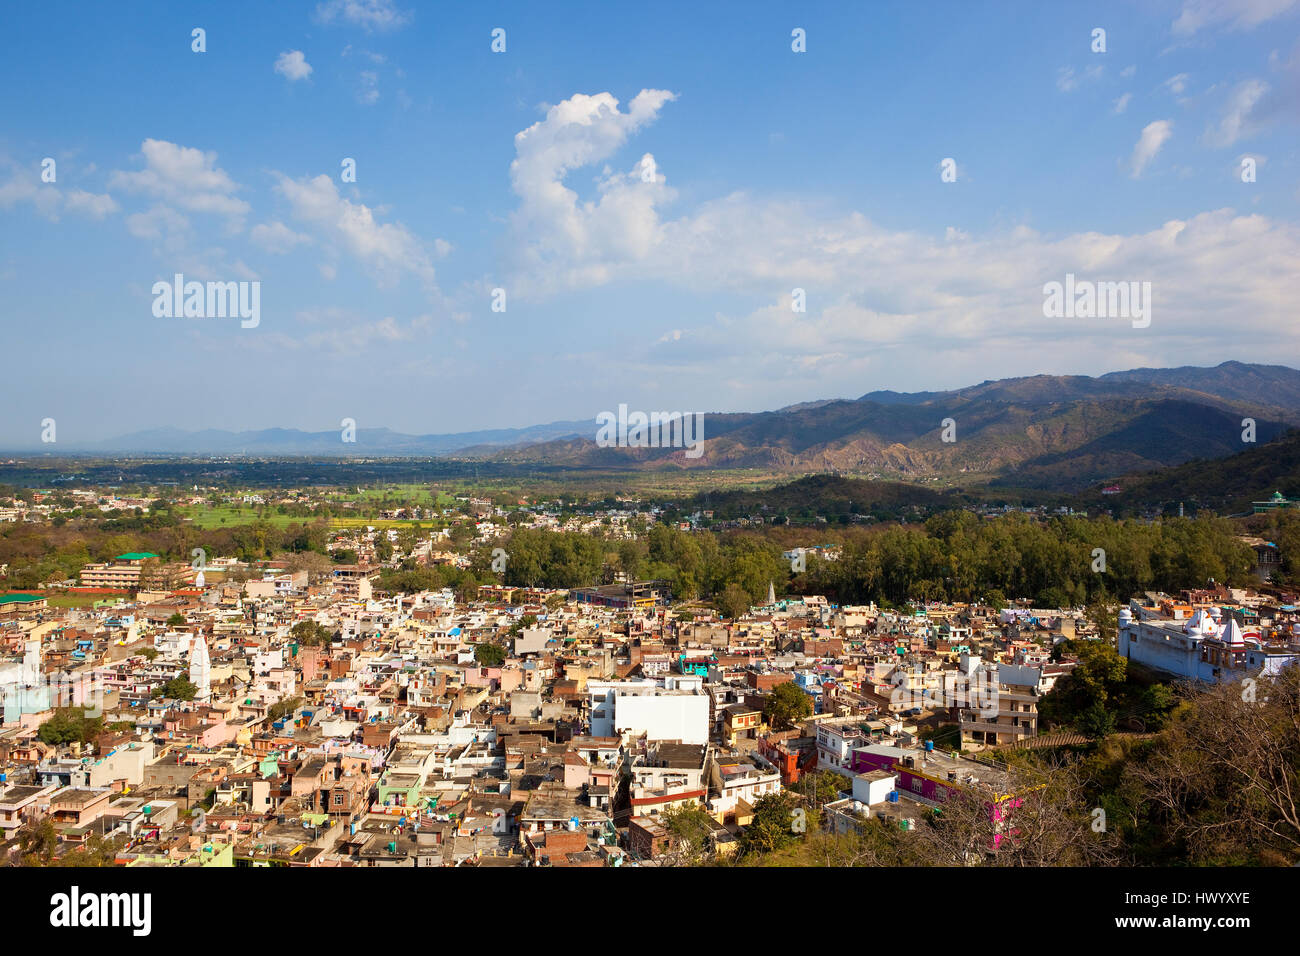 Aerial view of the city of Nalagarh in Himachal Pradesh, North India from the fort palace with mountains and a blue - Stock Image